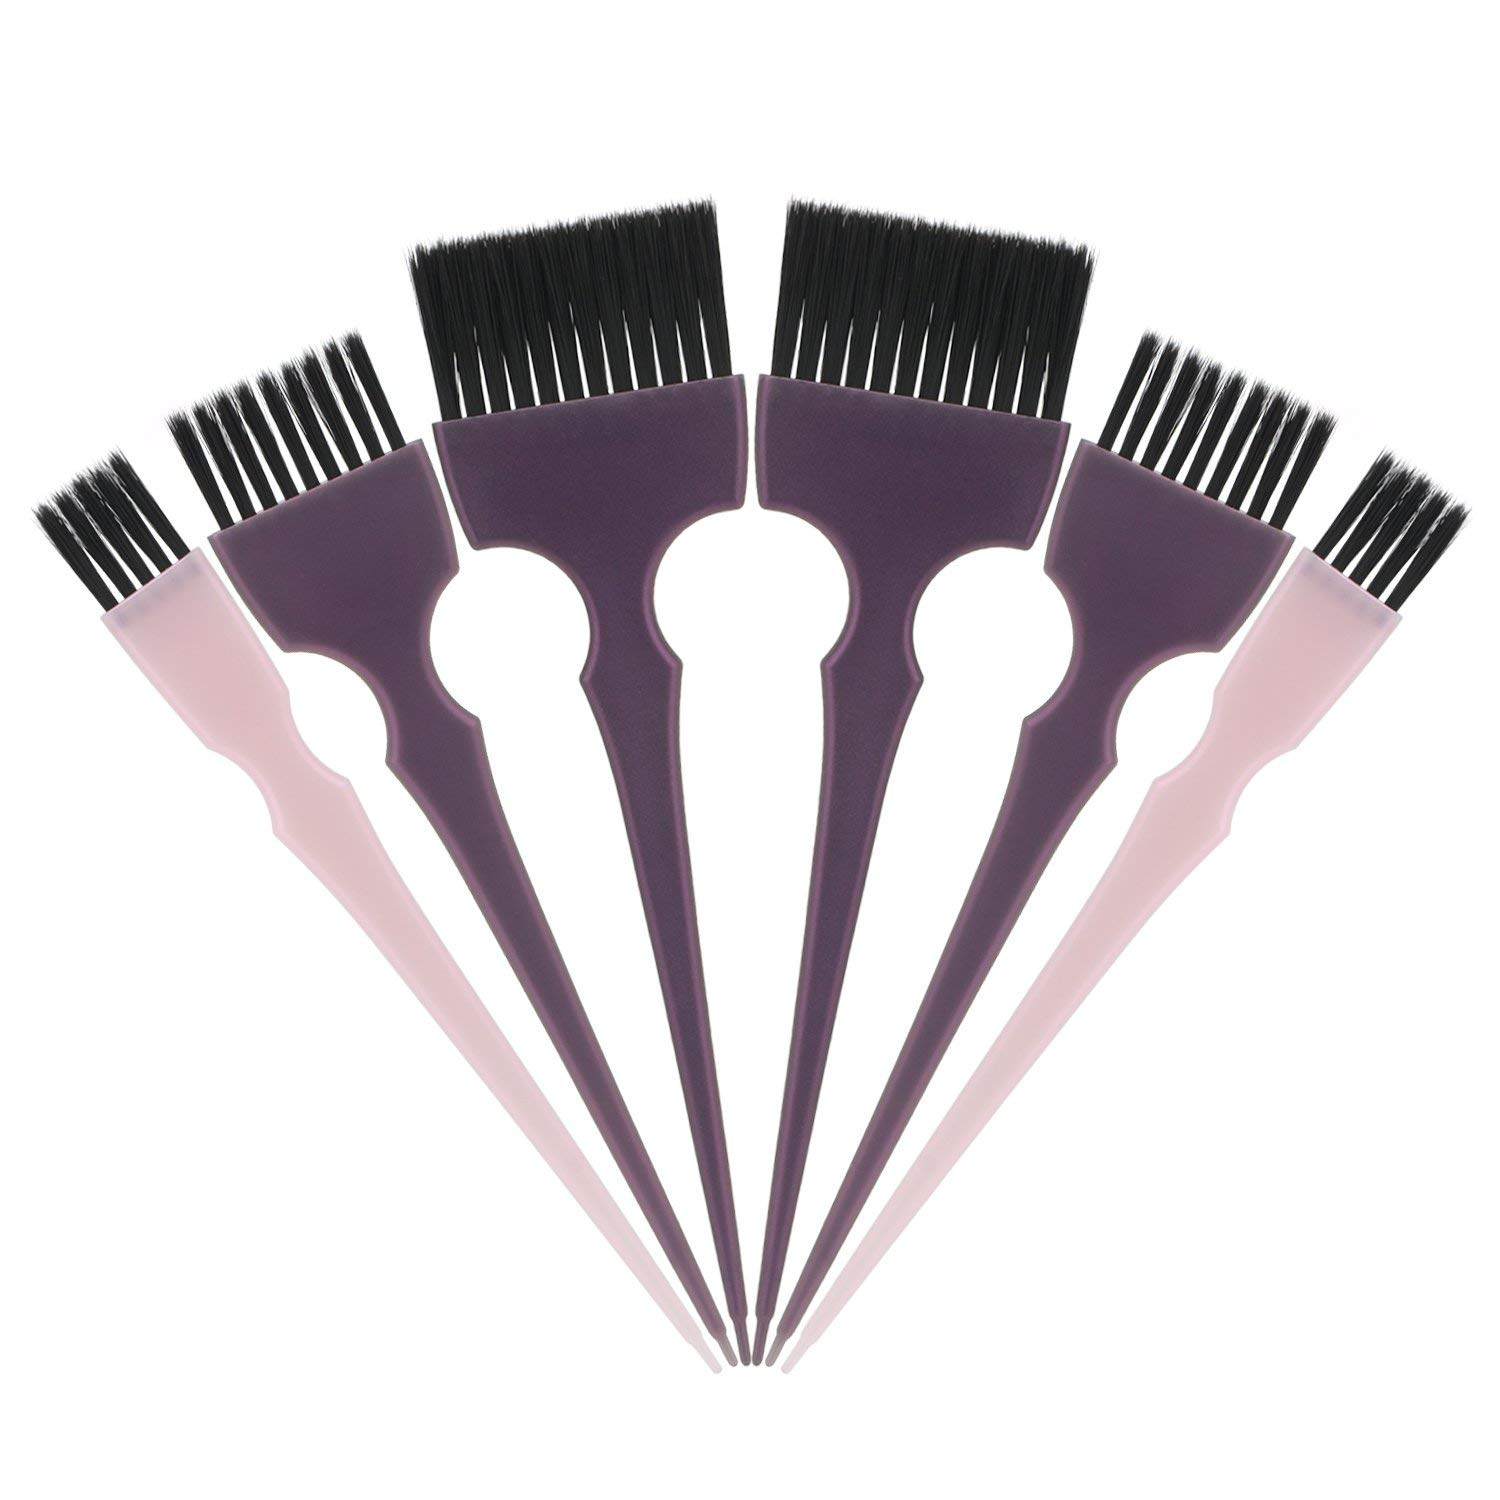 Segbeauty Hair Dye Brush 6pcs Tint Brush Set Hair